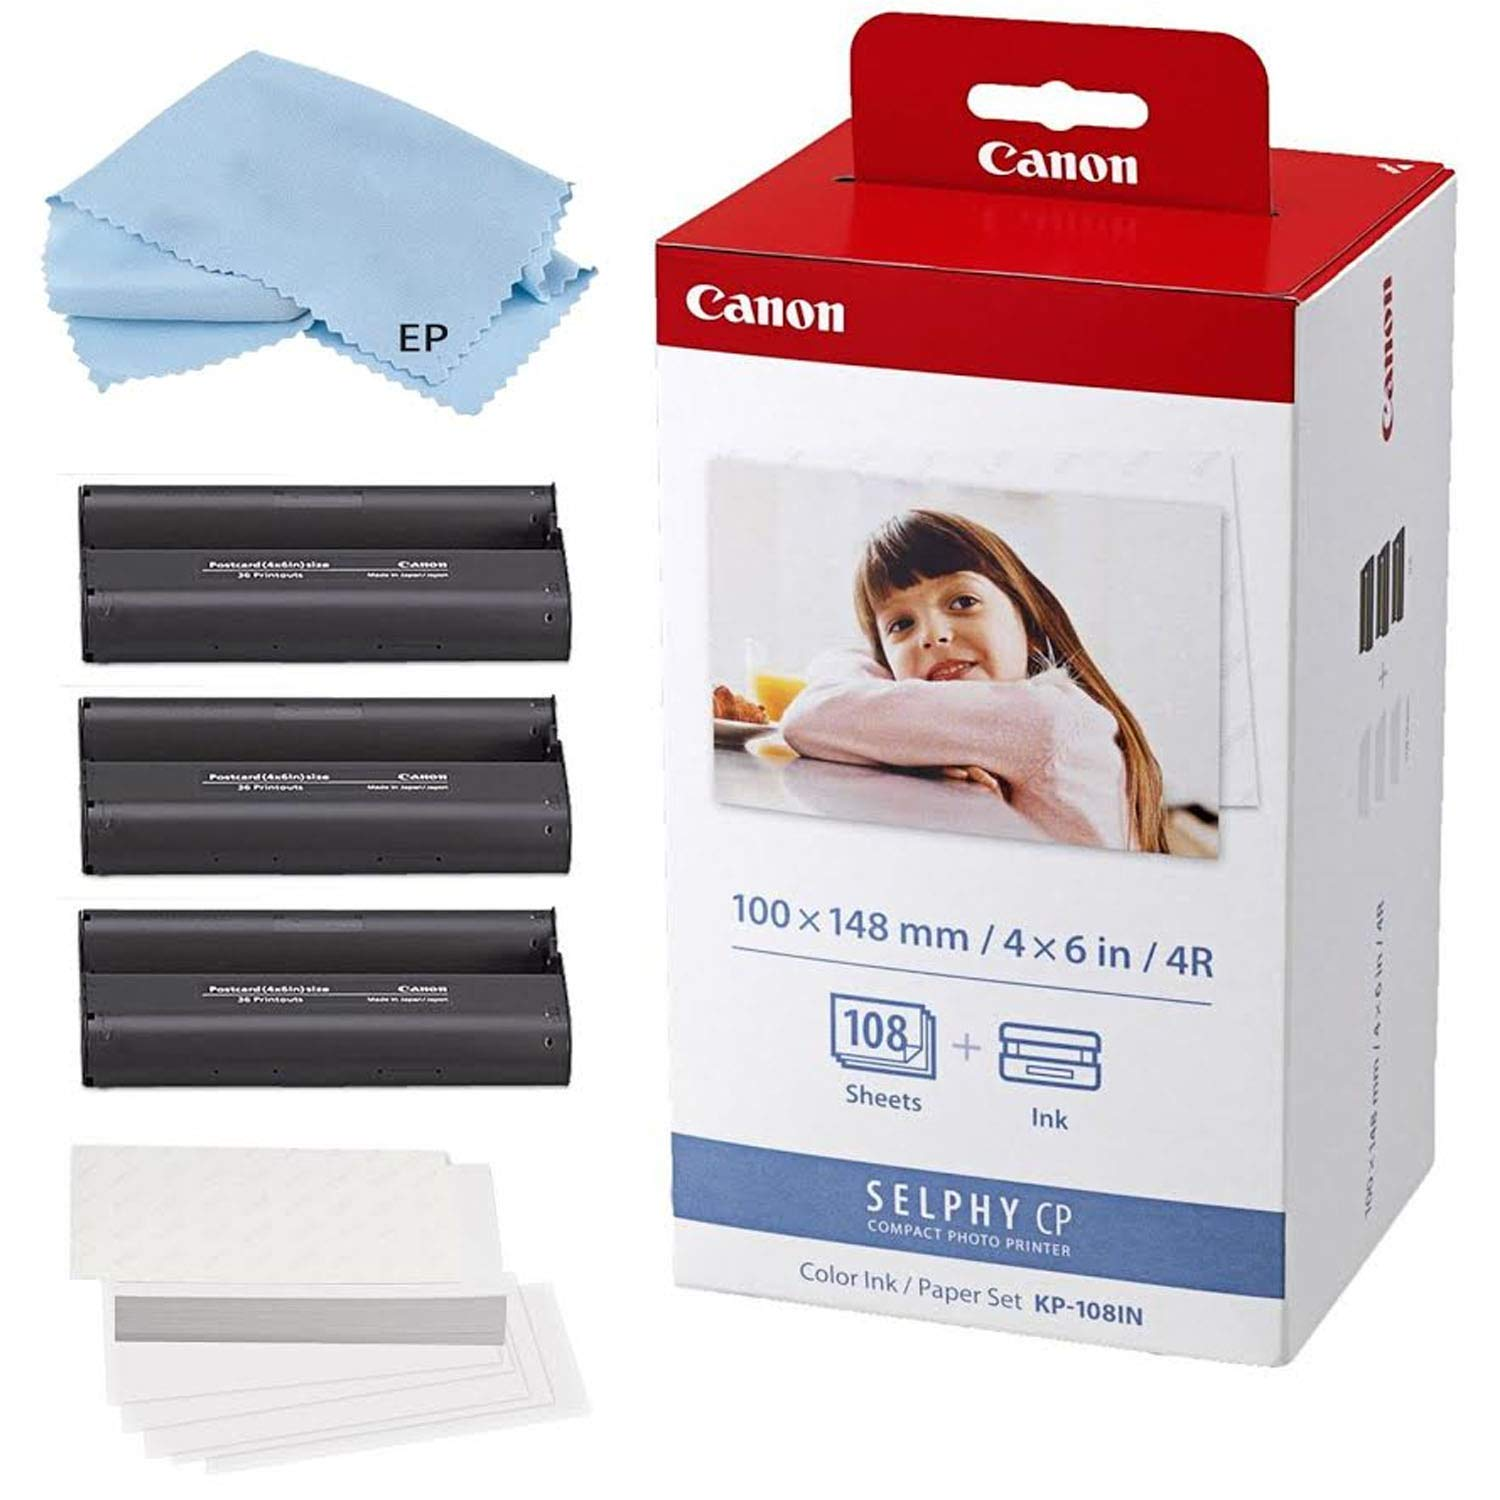 Canon KP-108IN 3 Color Ink Cassette and 108 Sheets 4 x 6 Paper for SELPHY CP1300, CP1200, CP910, CP900, CP760, CP770, CP780 CP800 Wireless Compact Photo Printer with Cleaning Cloth by Eternal Photo